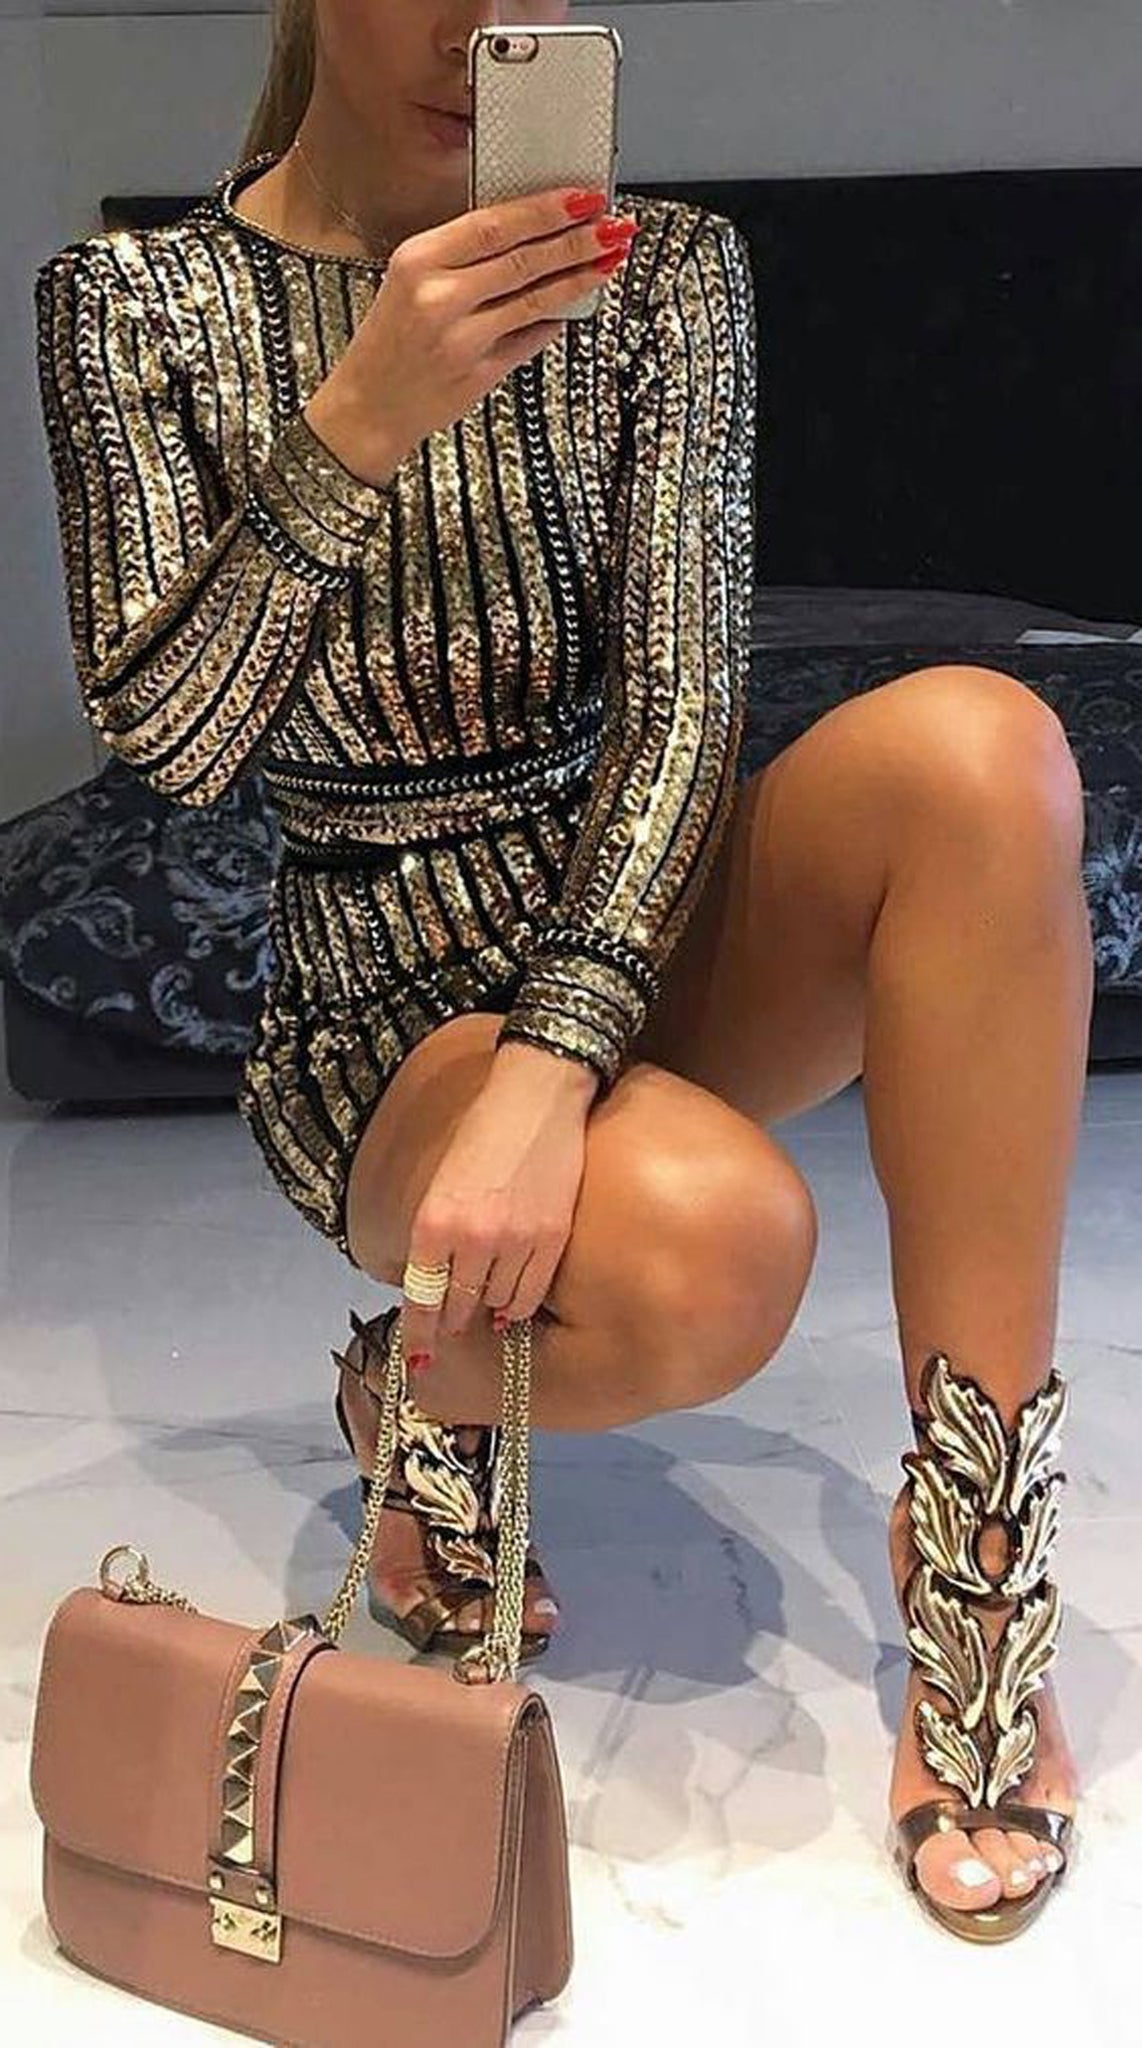 Fancy Party Outfits Ideas for the Holidays 2017 - Sparkly Sequin Panel Mini Black Dress - Leaf Feather Giuseppe High Heels - Valentino Crossbody - MyBodiArt.com